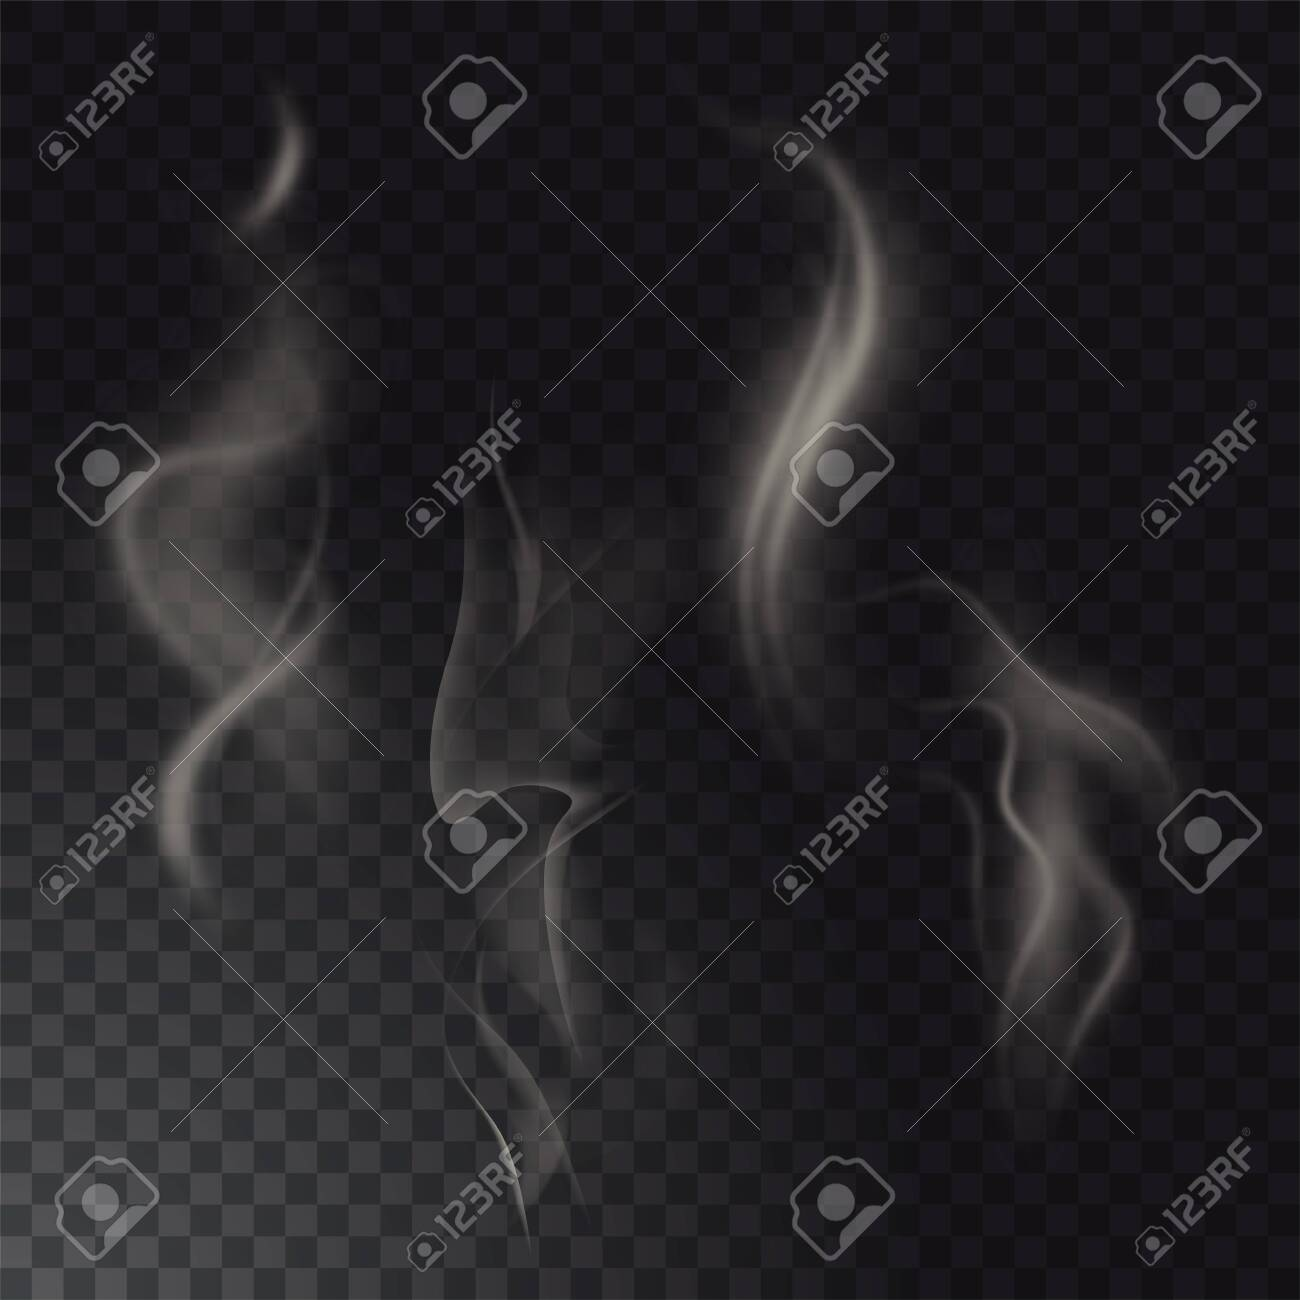 Set of high detailed smokes from hot food or drink isolated on transparent background - 150731804